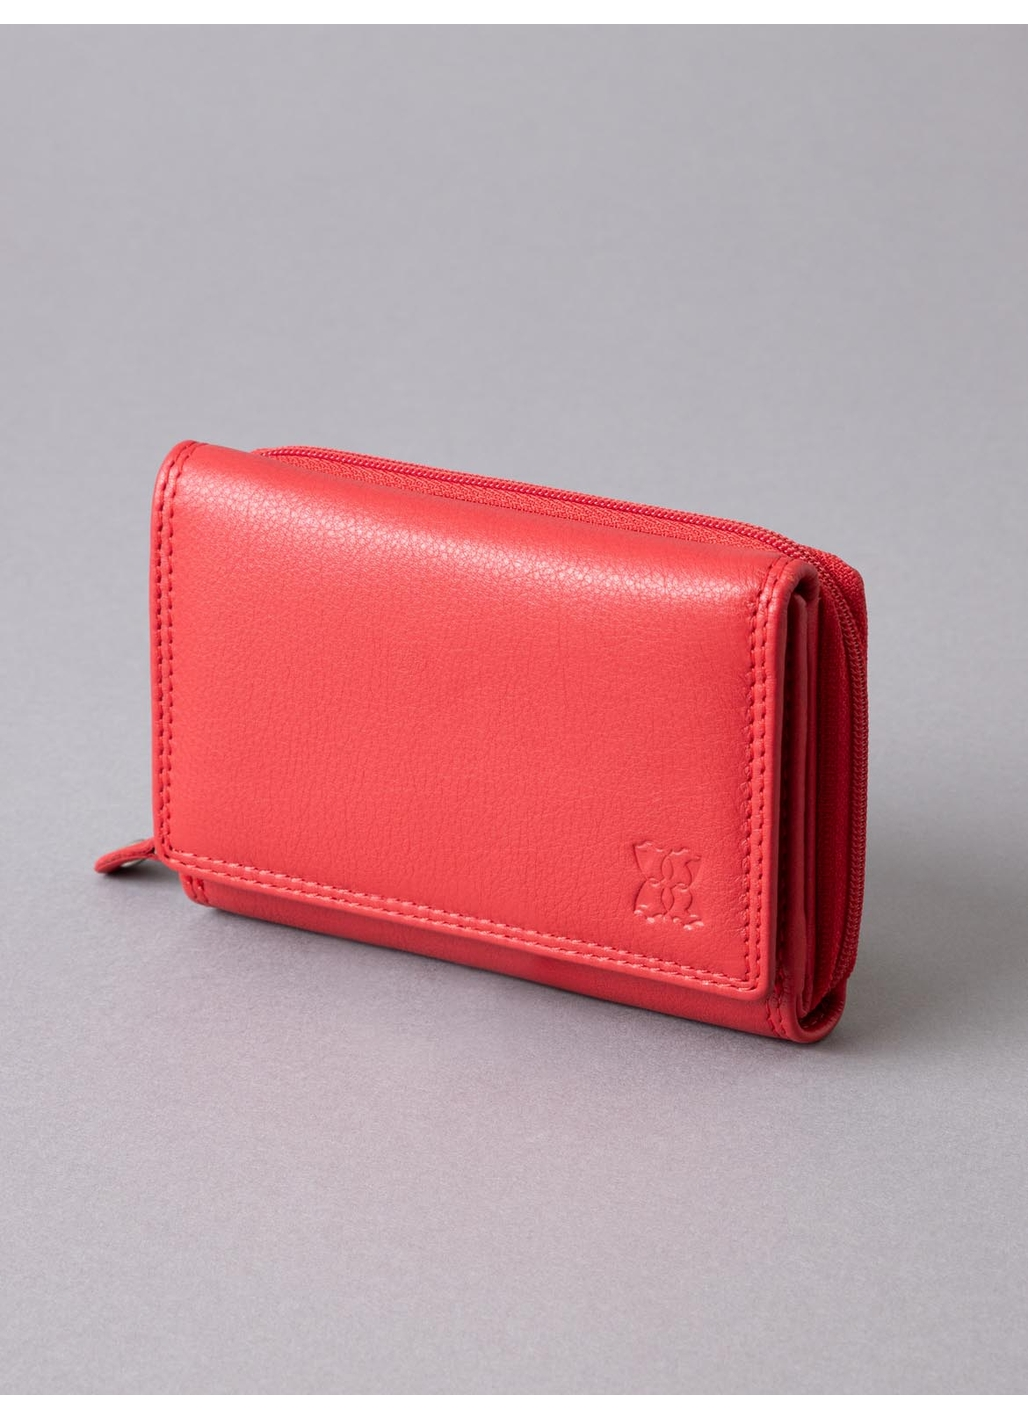 12.5cm Leather Purse in Red